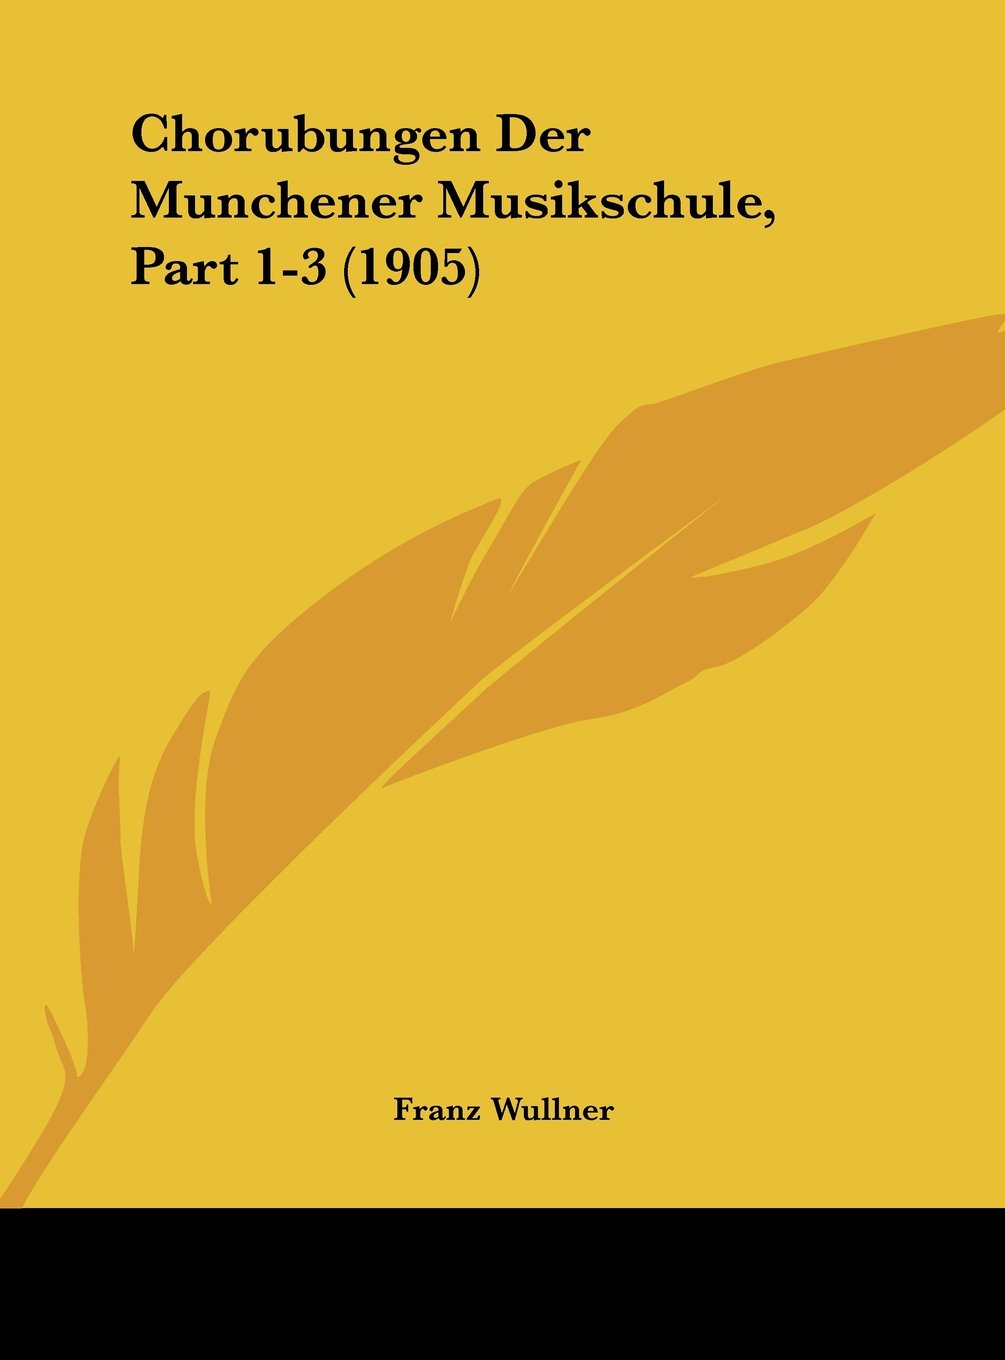 Chorubungen Der Munchener Musikschule, Part 1-3 (1905) (German Edition) pdf epub